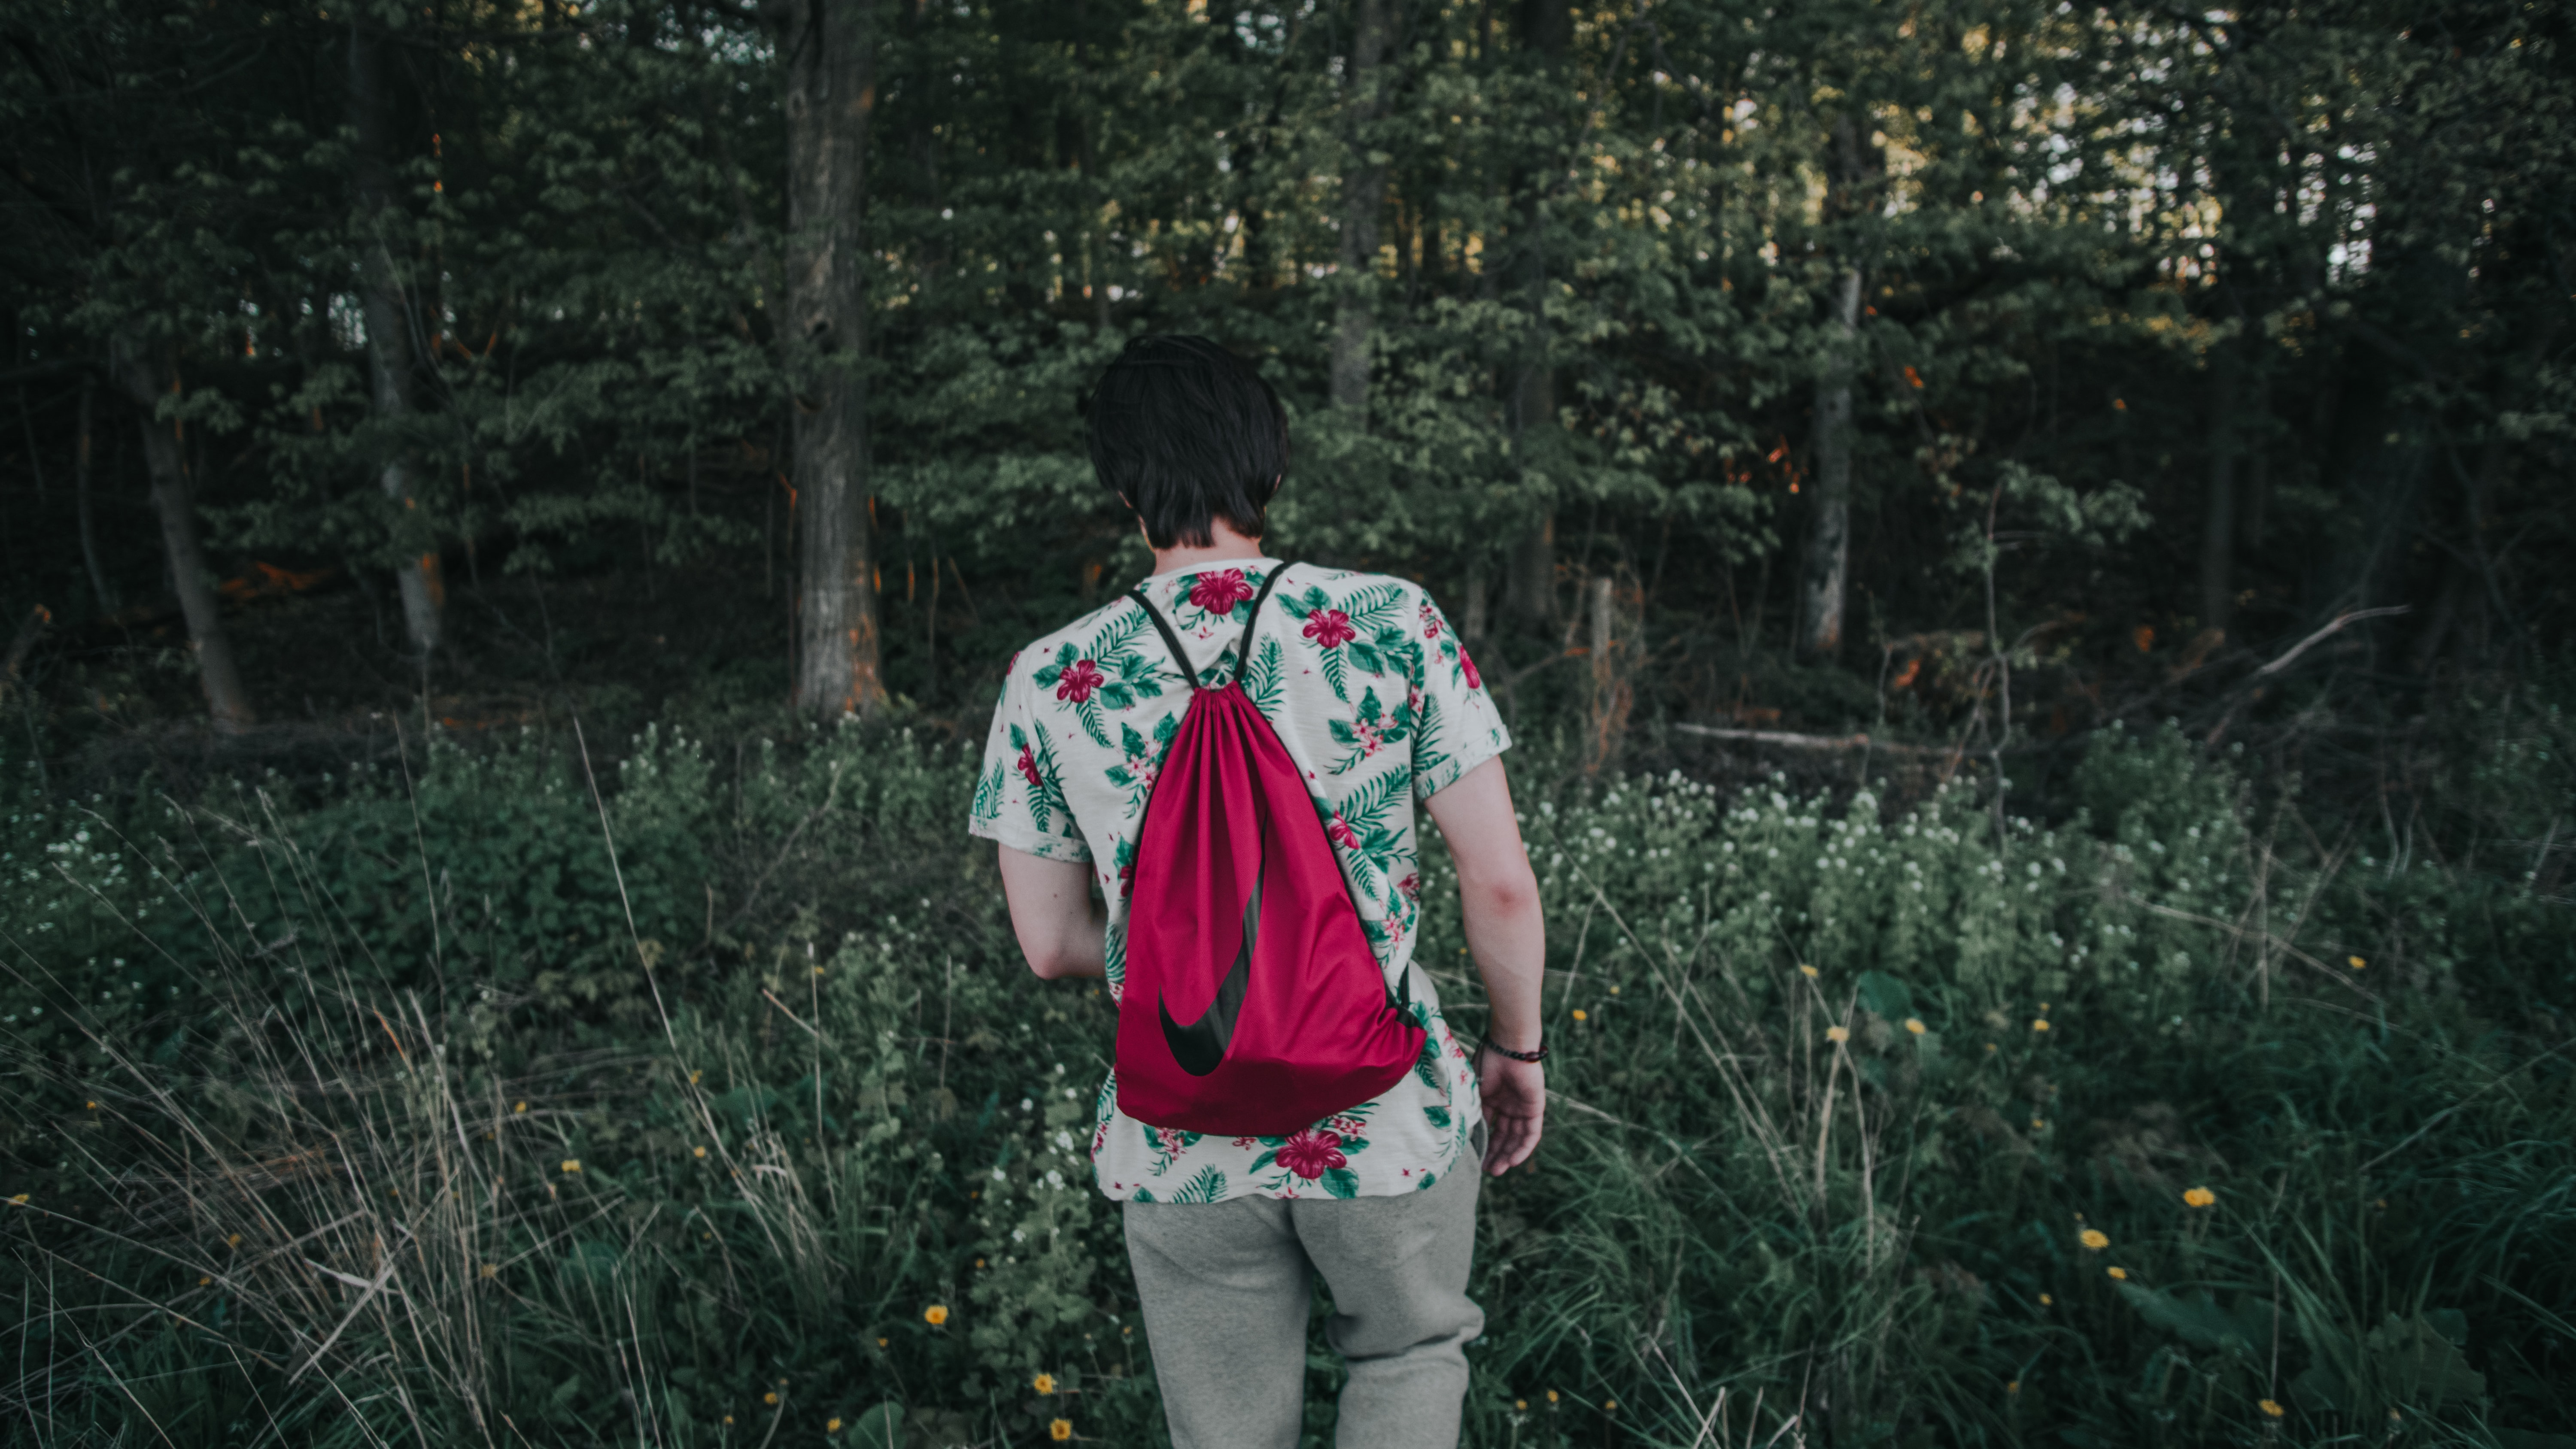 A person with a red back on their back standing back to camera in a forest